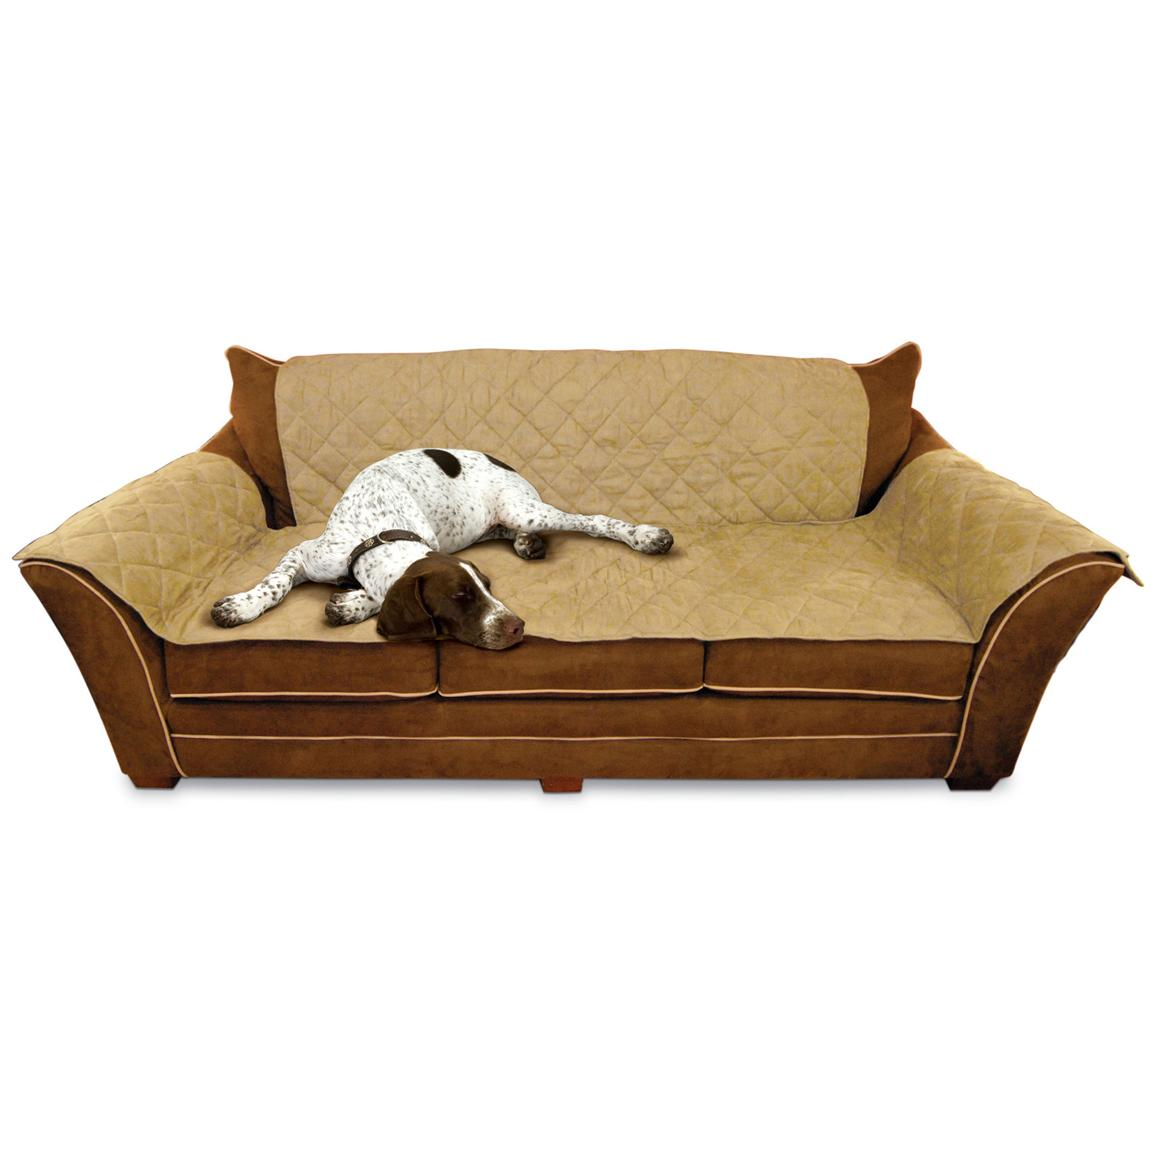 K&H Pet Products Furniture Cover™, Tan - Couch